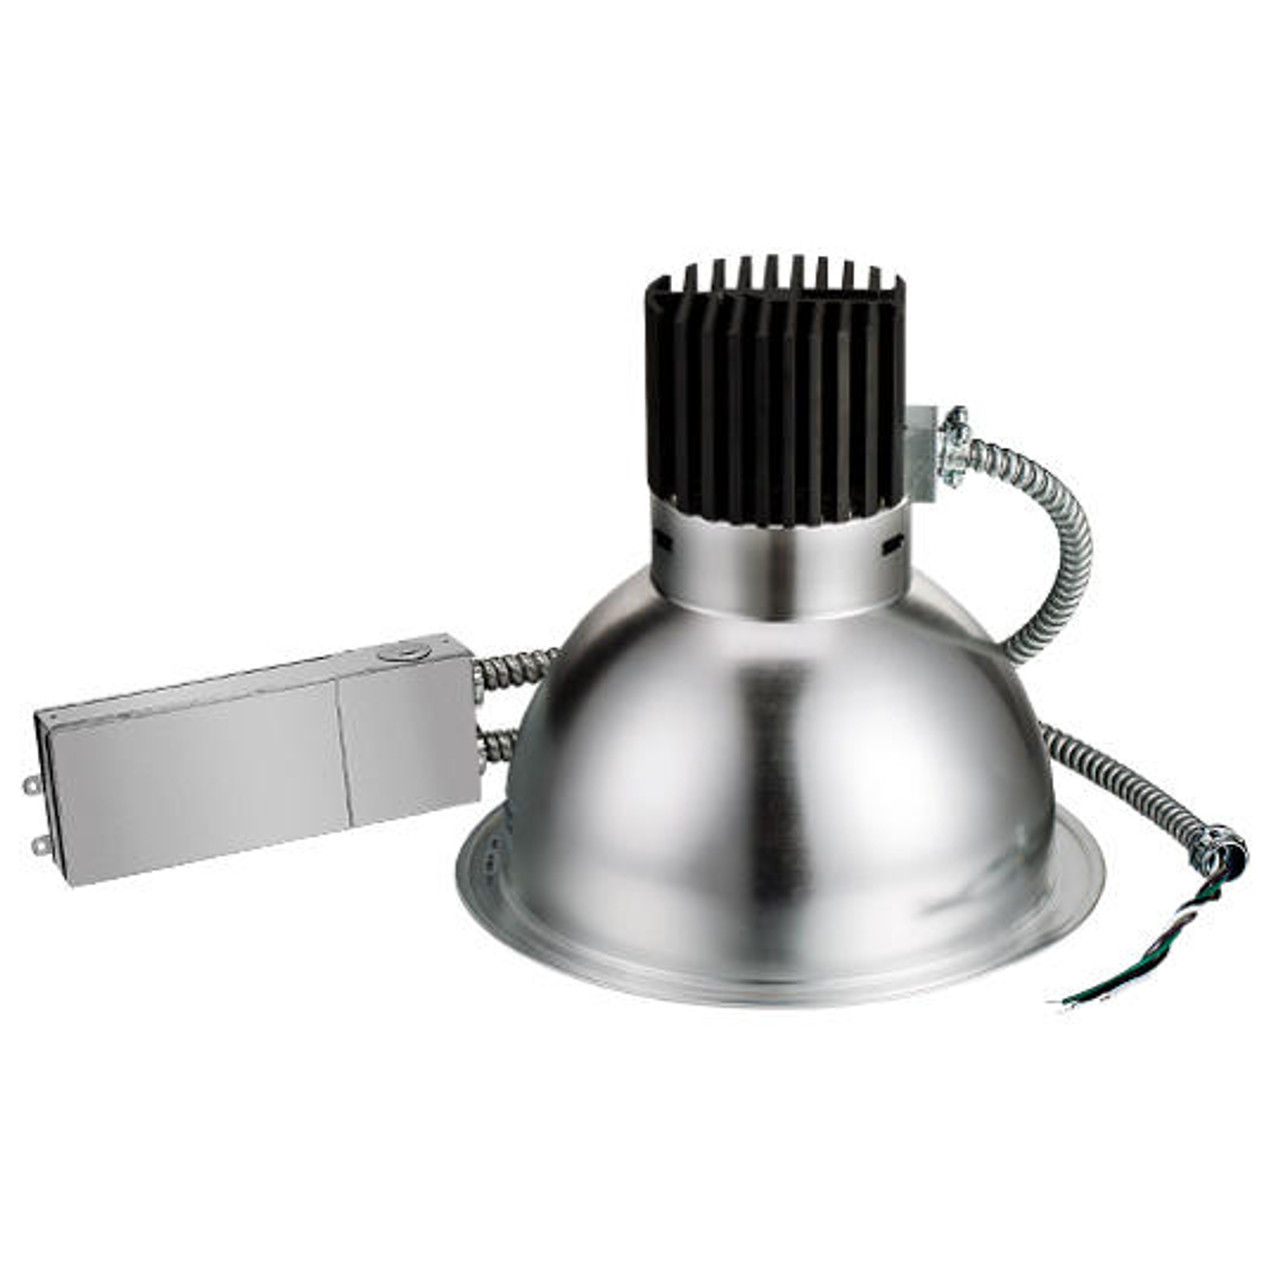 10 inch LED Commercial down light 120/277 volt, UL& Energy star rated